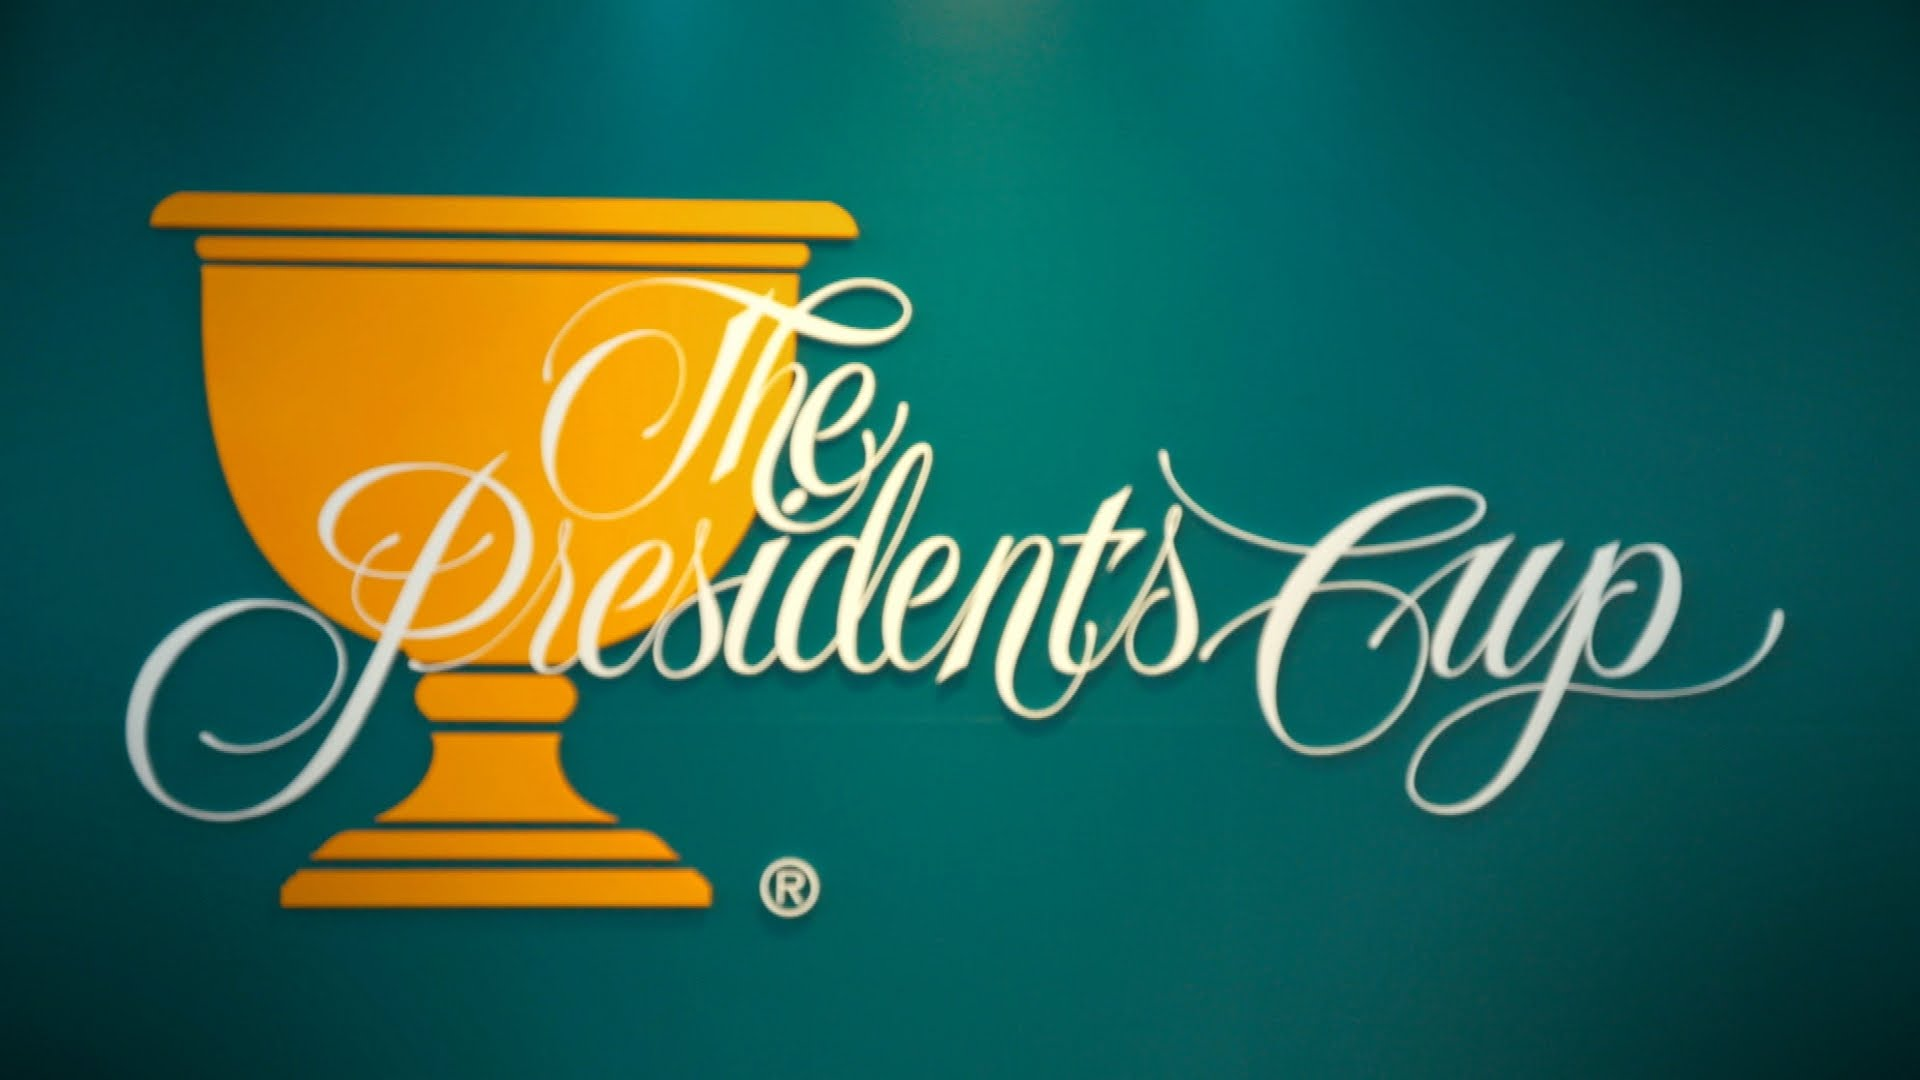 Presidents Cup - A Unique Pro Golf Event - Golf Events and Tournaments